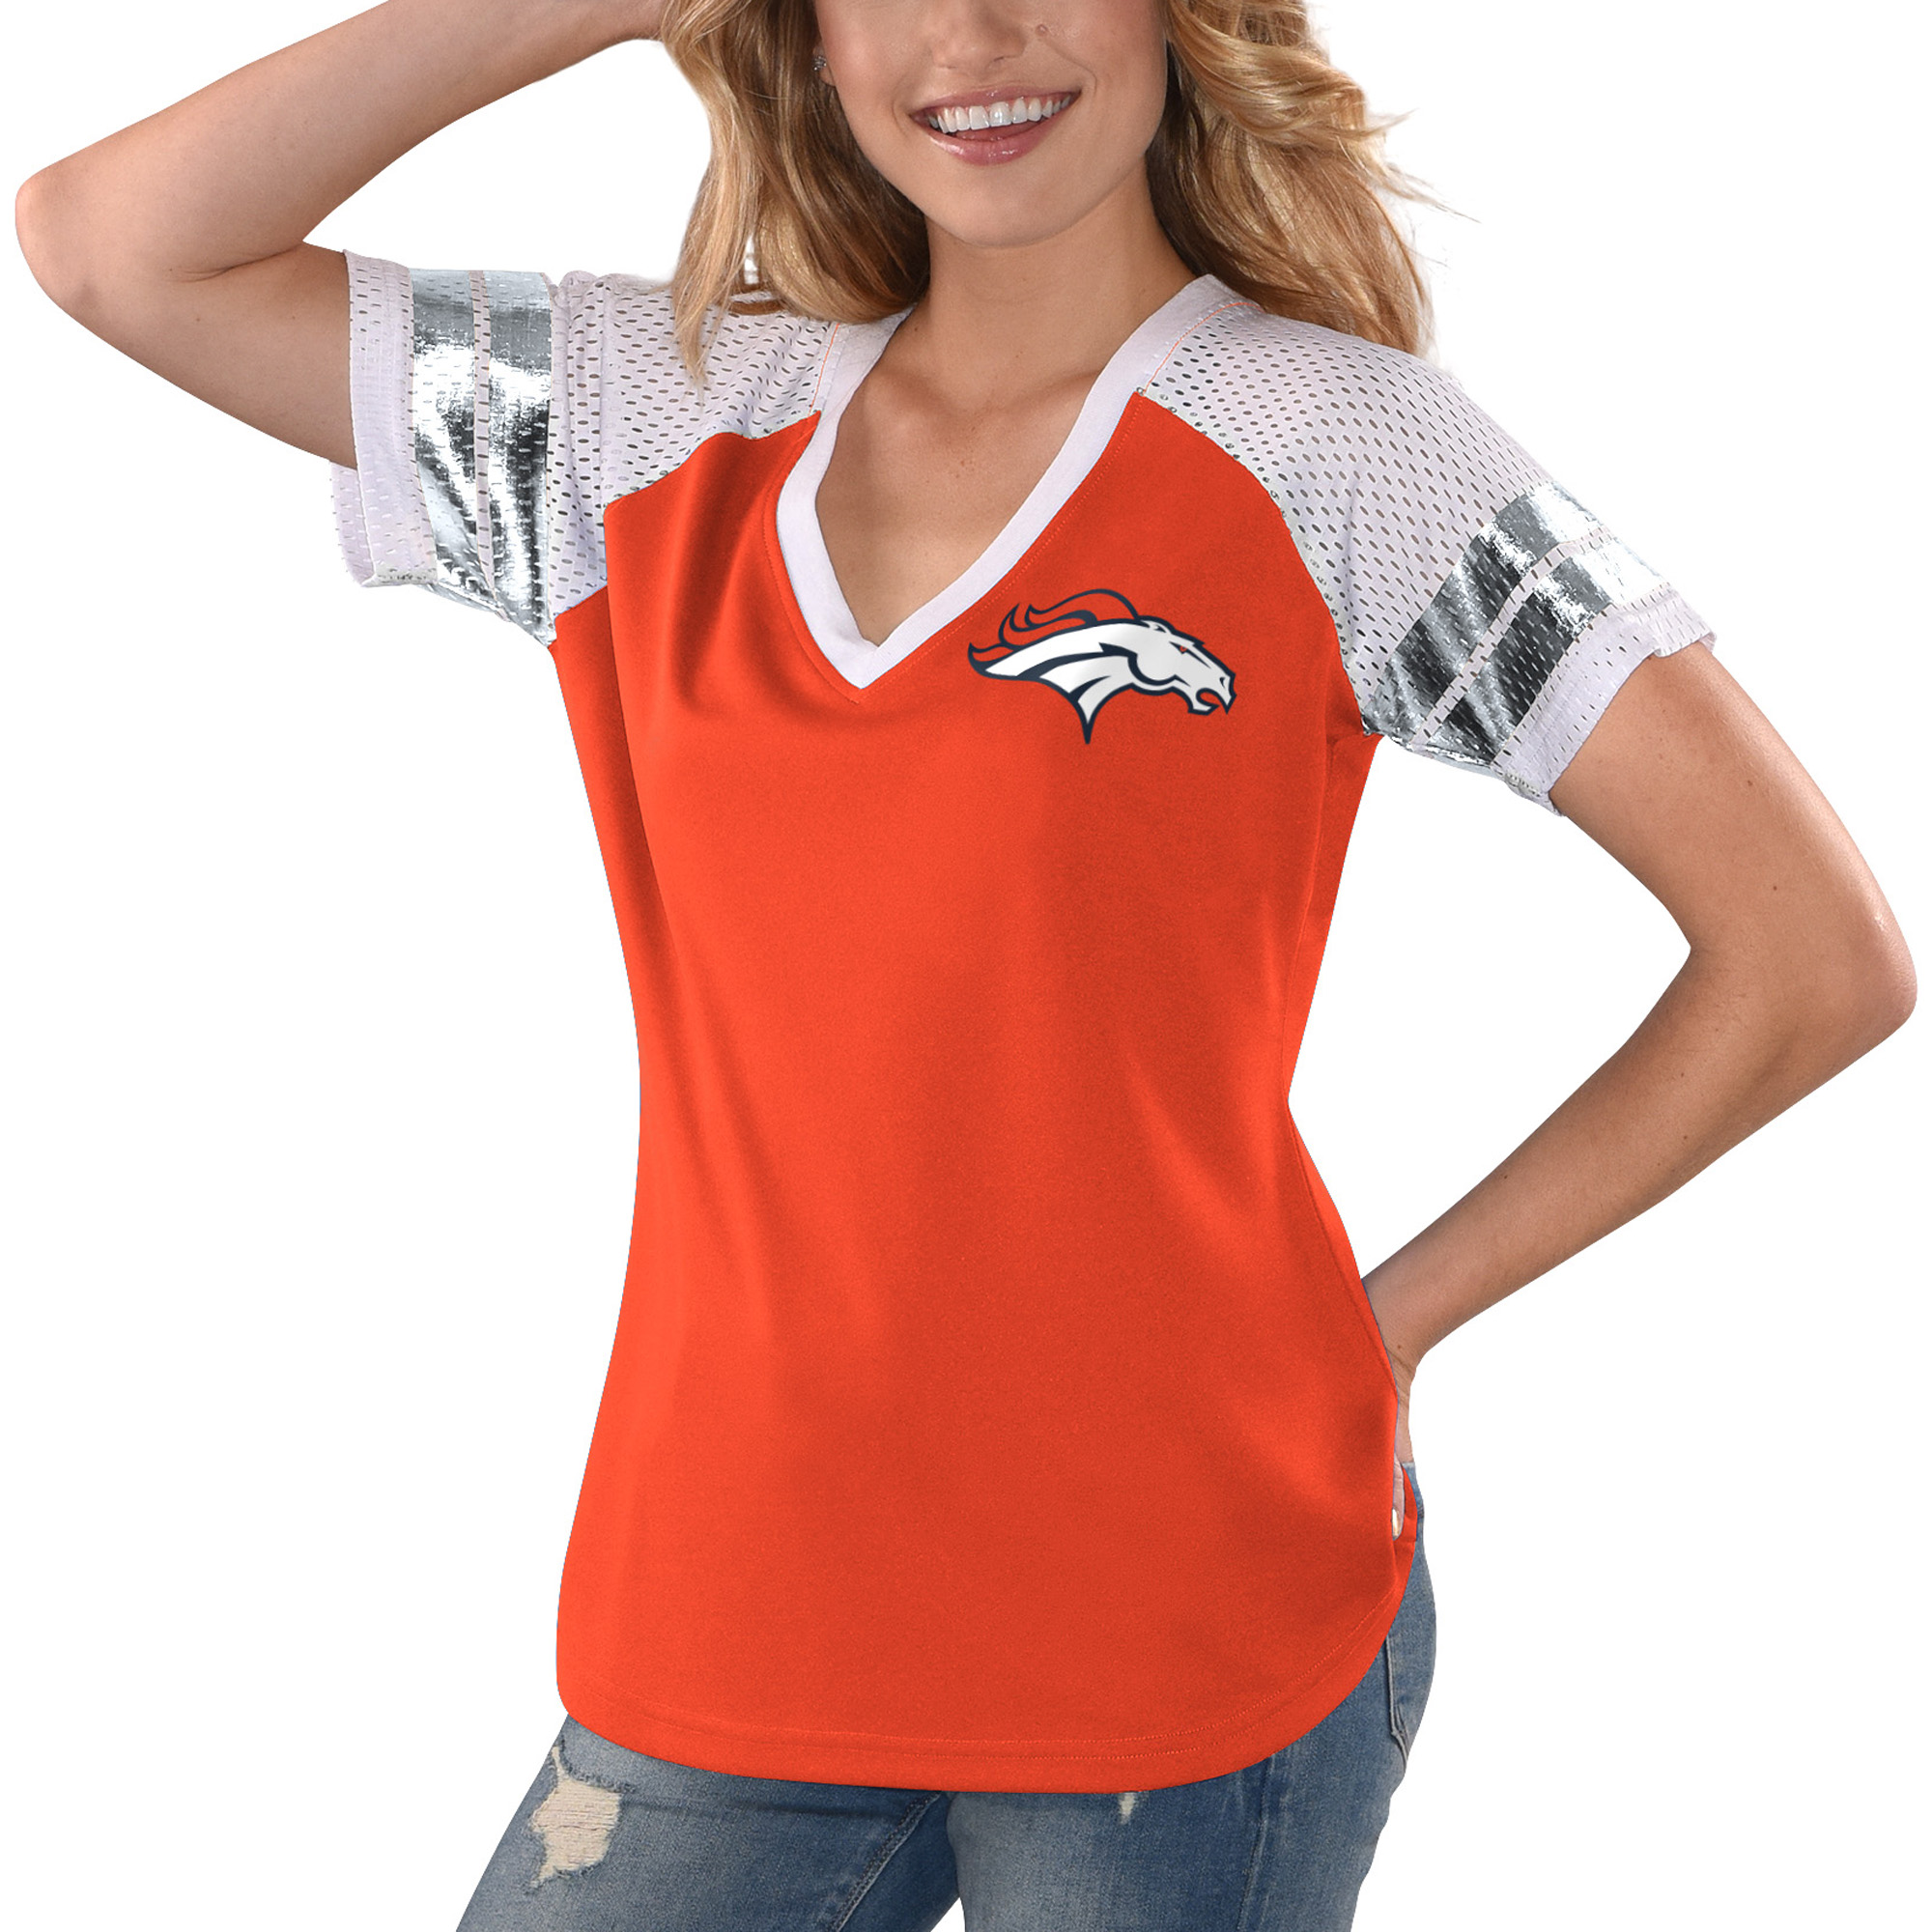 Denver Broncos G-III 4Her by Carl Banks Women's All Star V-Neck T-Shirt - Orange/White